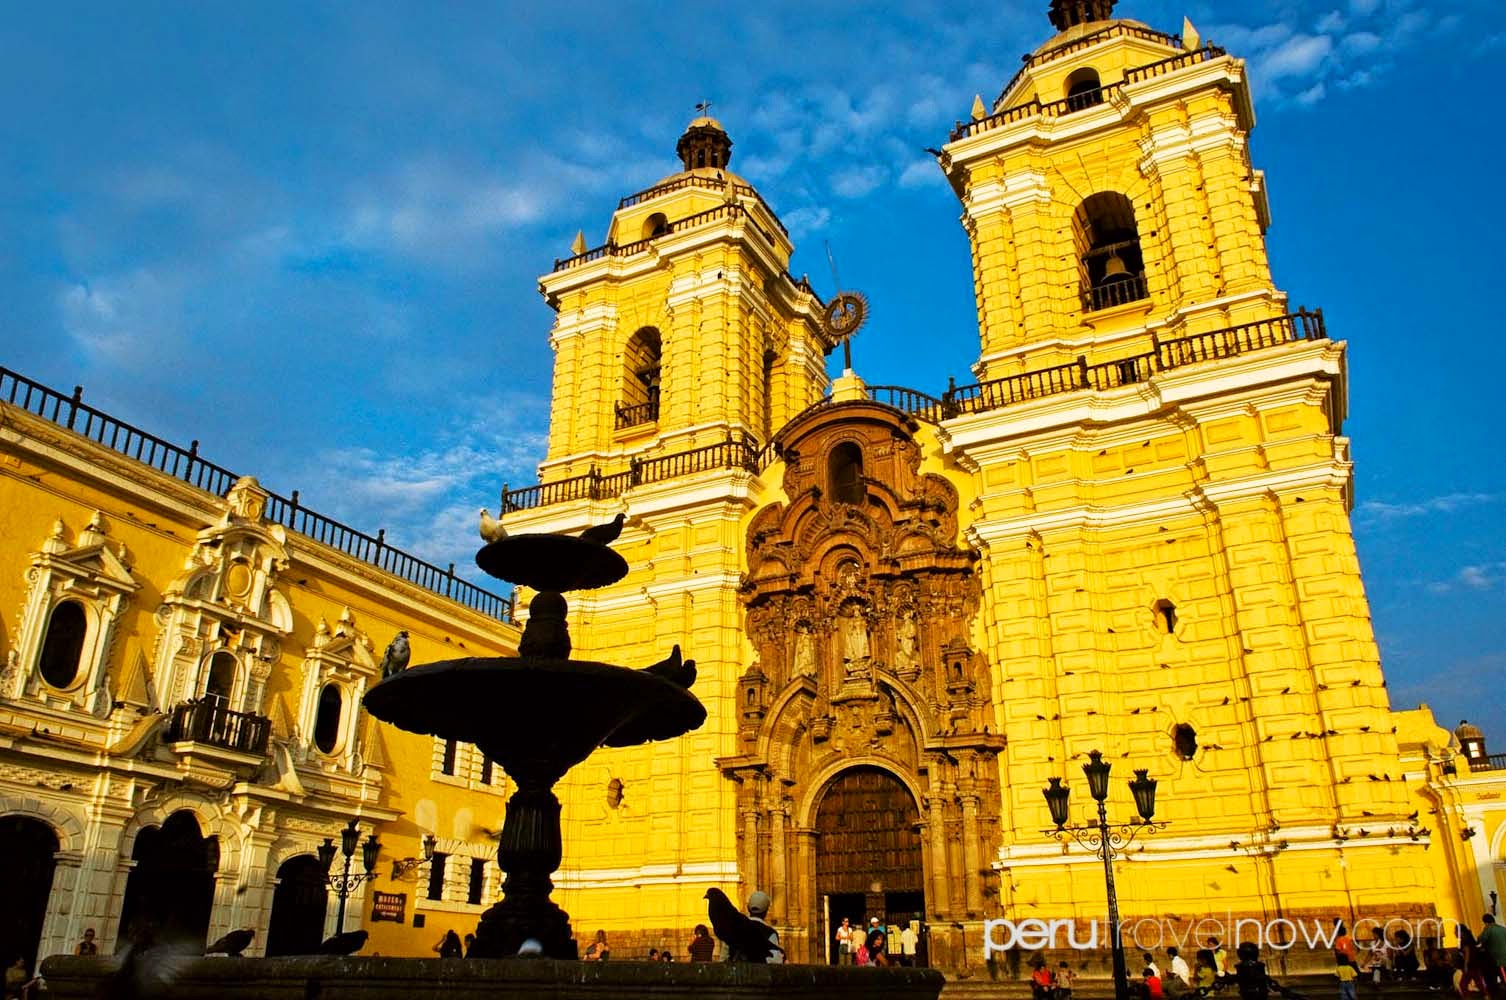 Book Readers Heaven: Guess What? BRH Visits Peru This Week ...